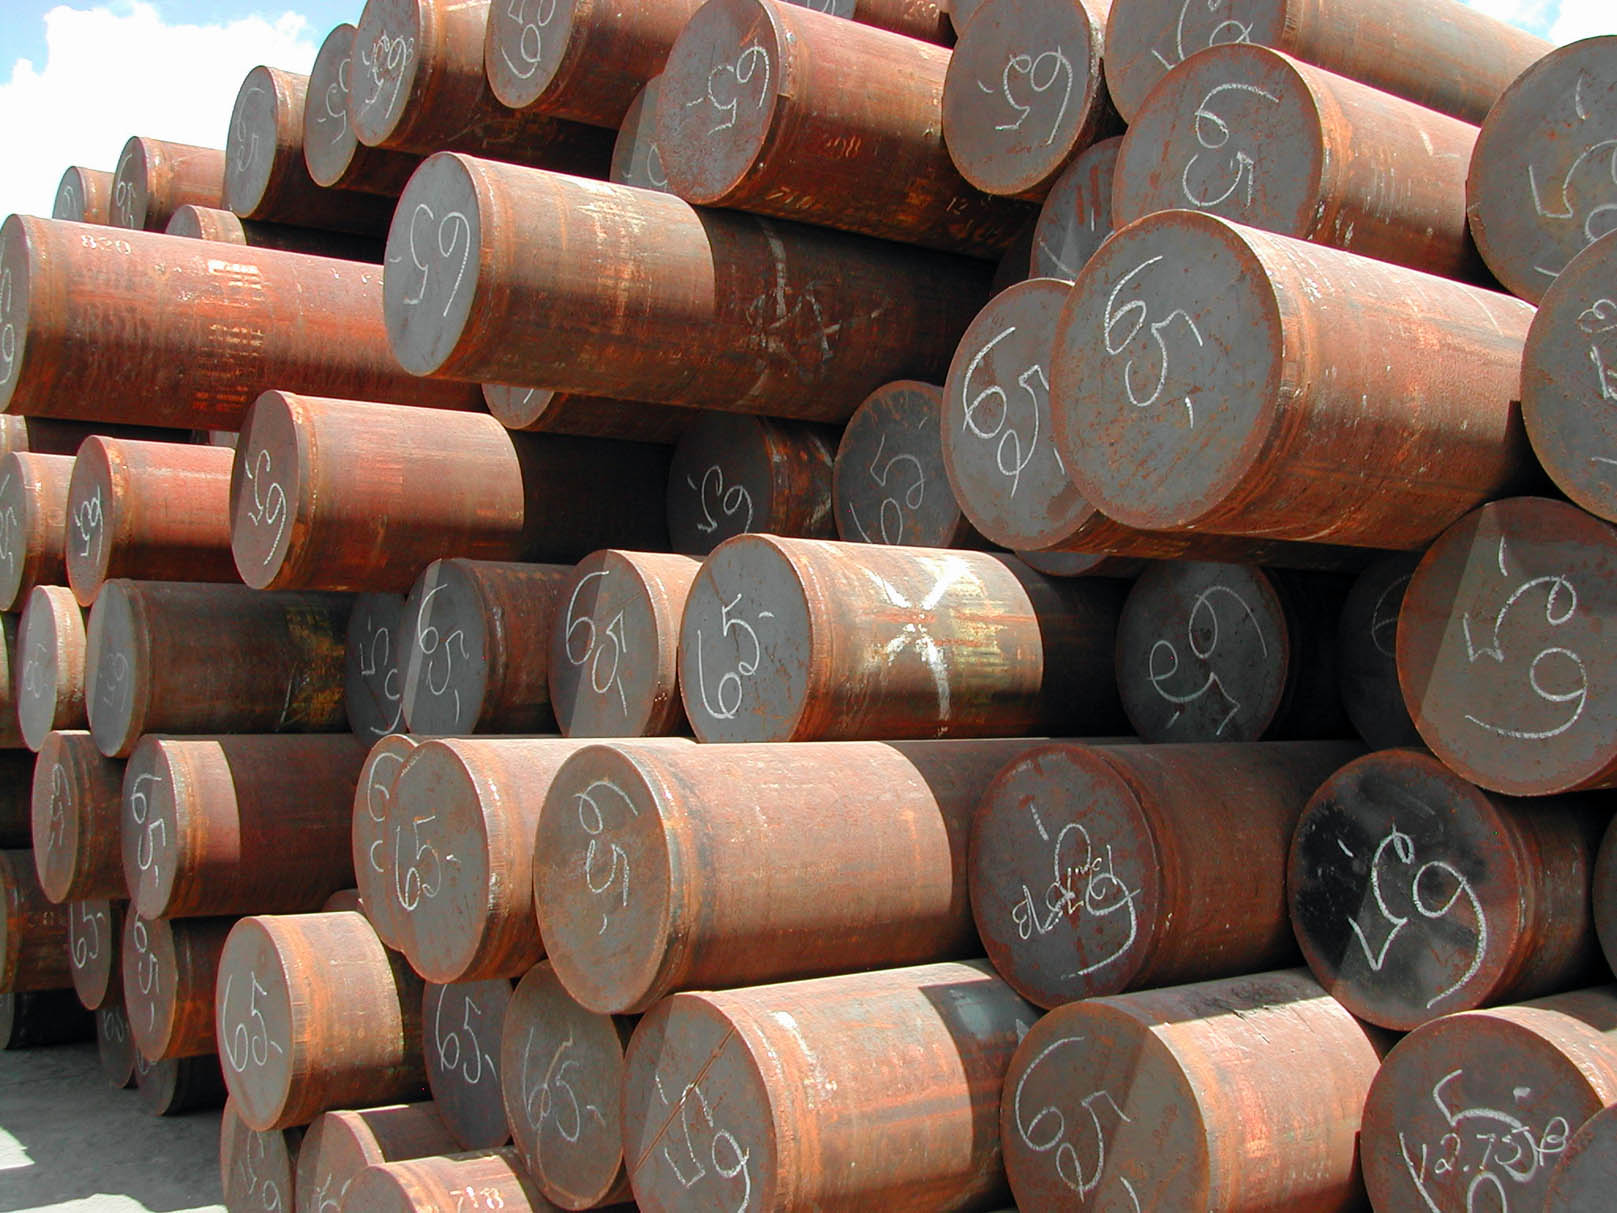 Pipe Piles | THE LALLY PIPE JOURNAL